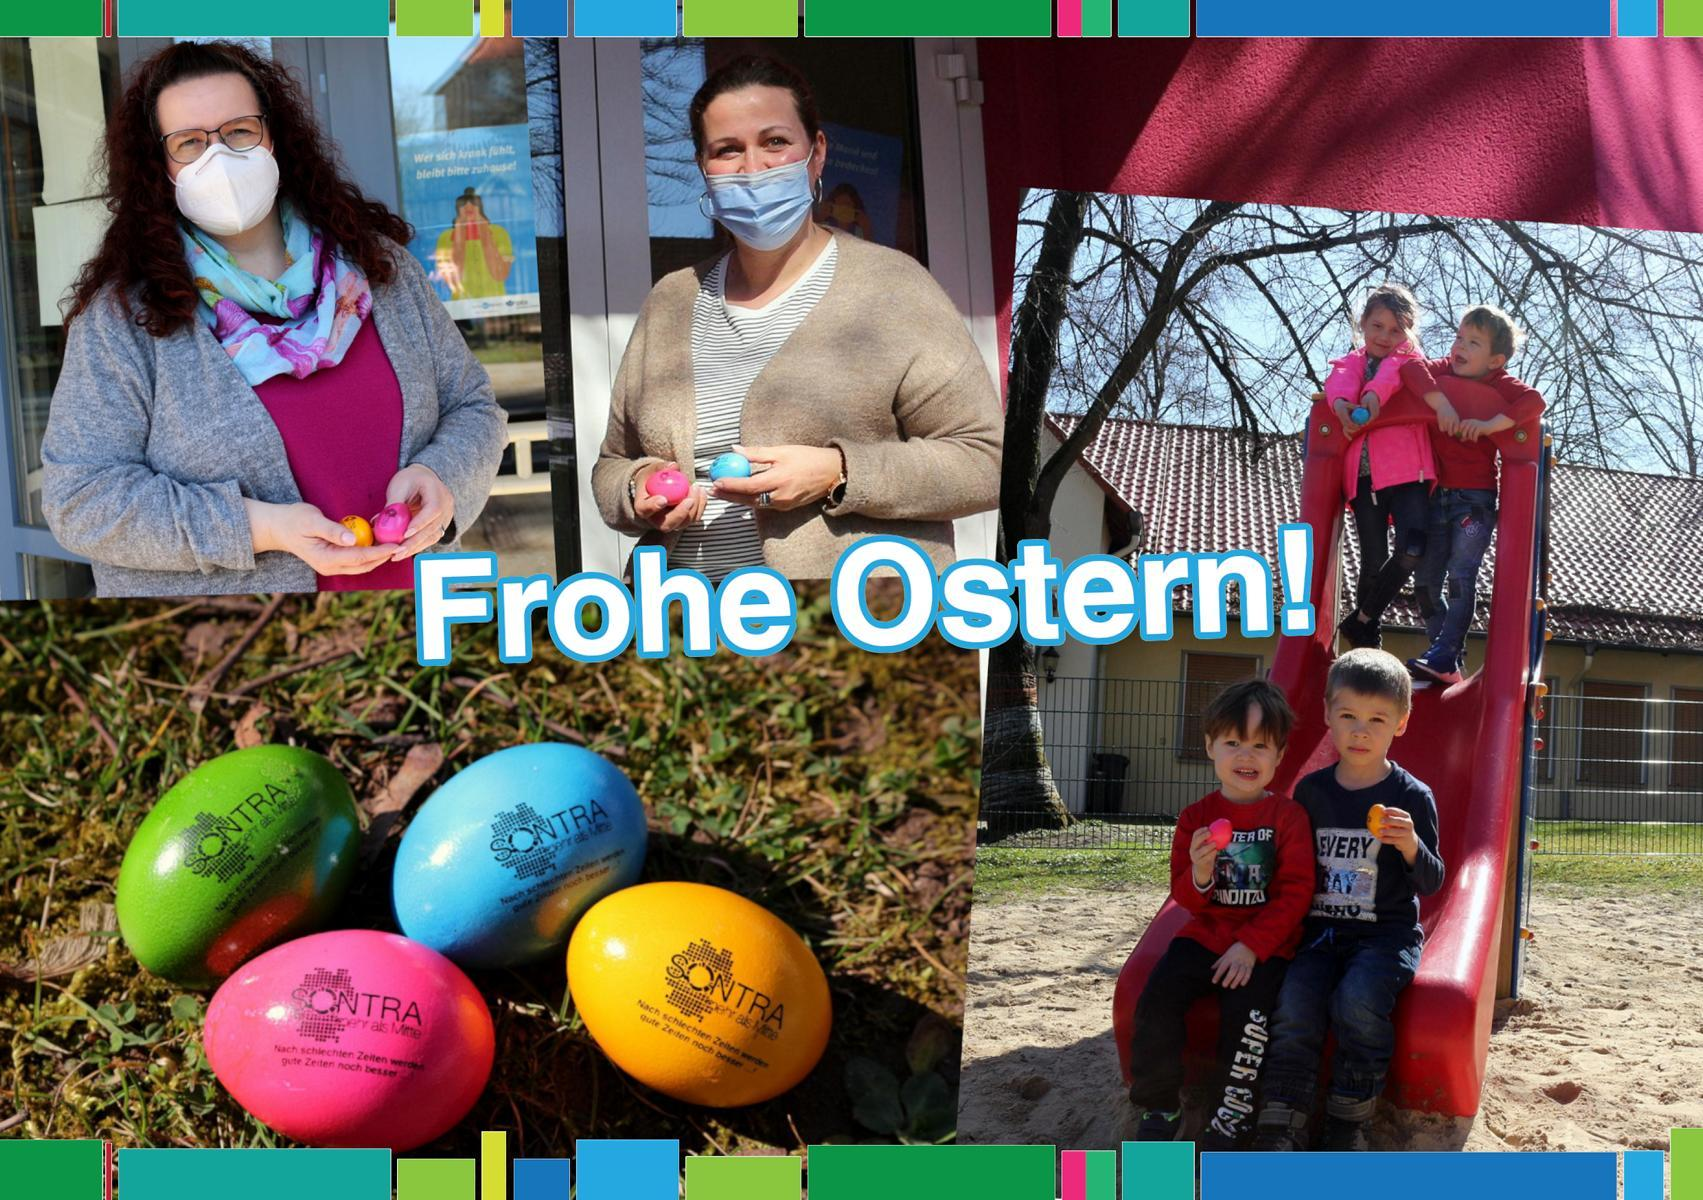 Frohe Ostern 2021!